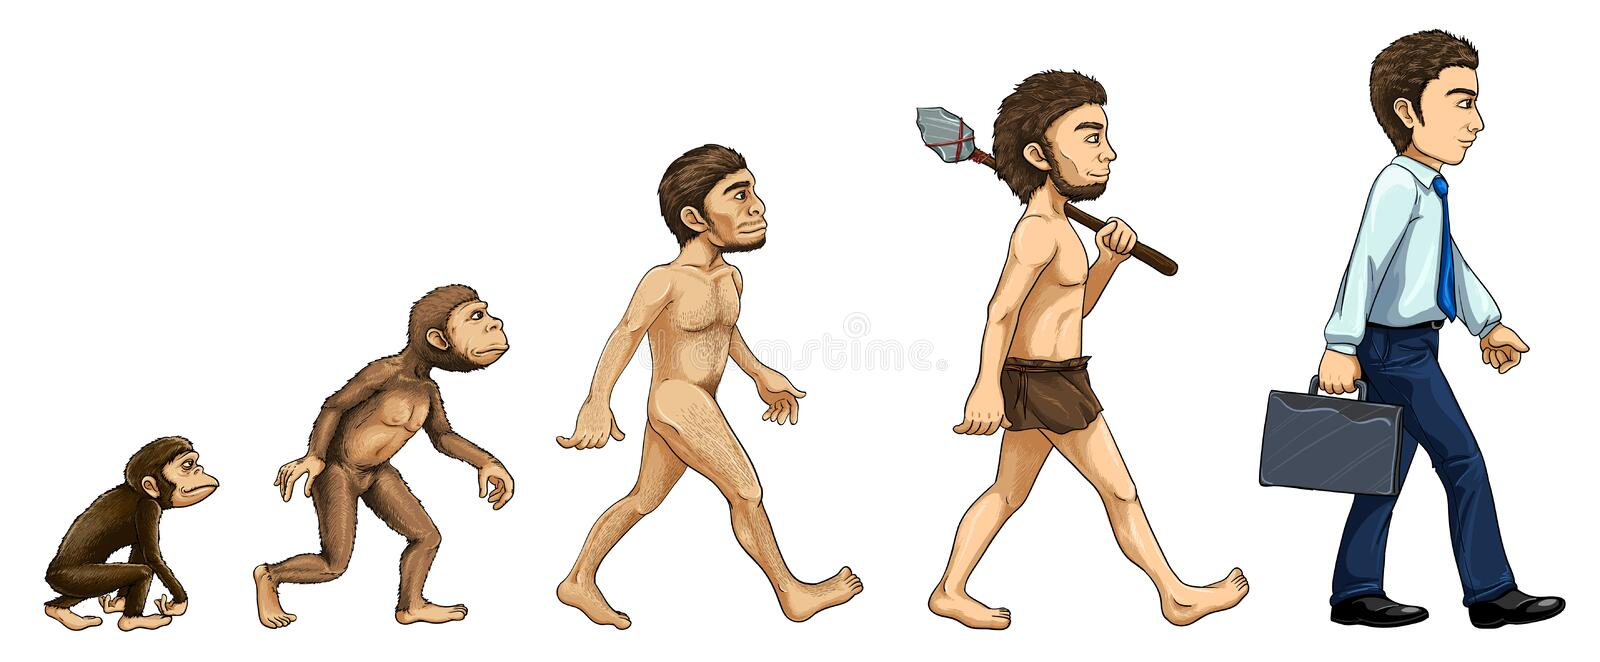 Evolutie van de mens stock illustratie